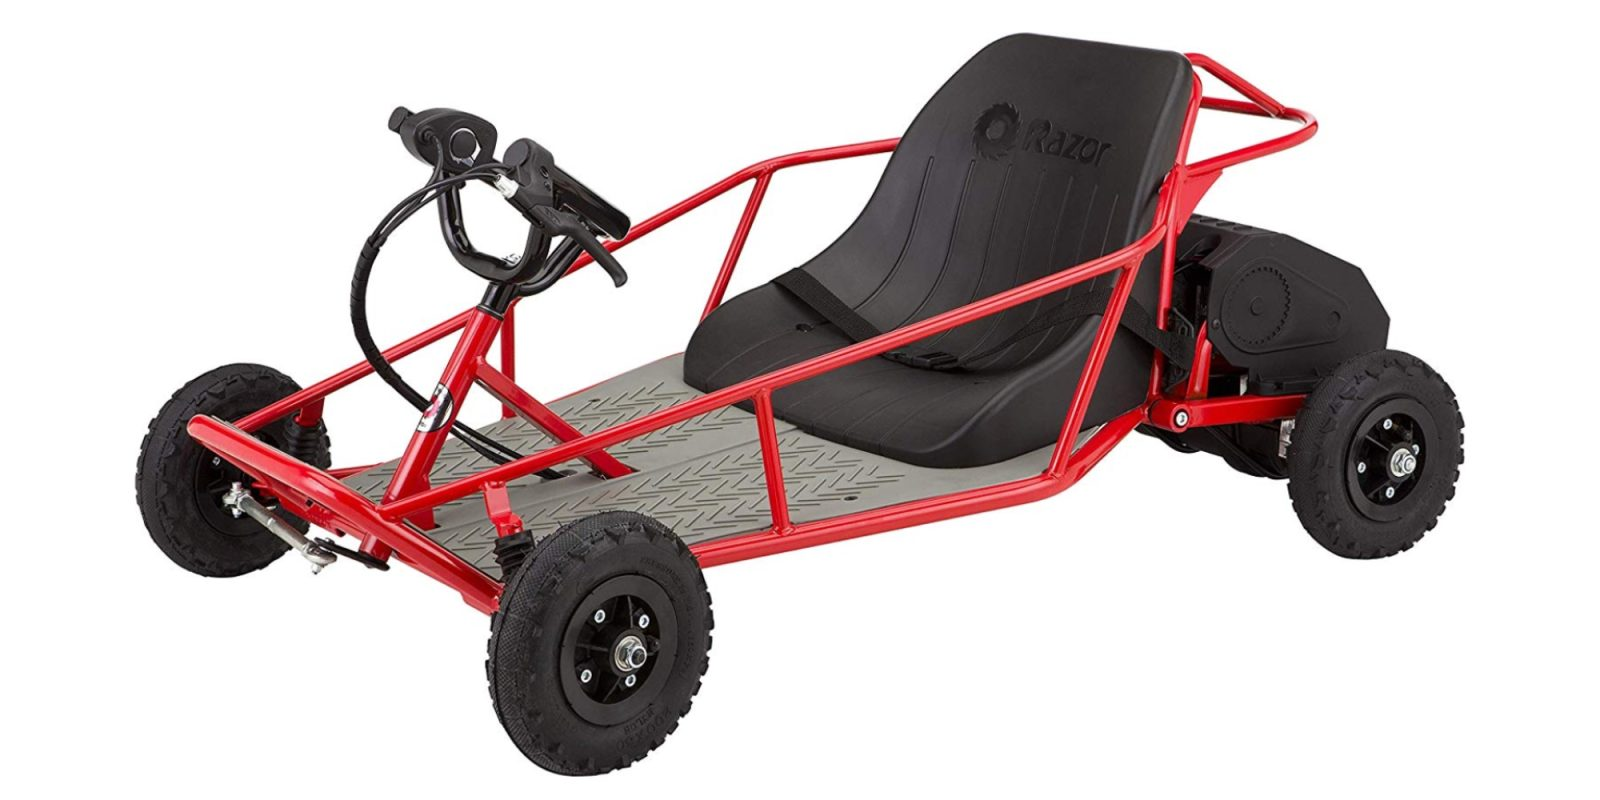 Razor's Electric Dune Buggy drops to best price in years at $269.50 (23% off)